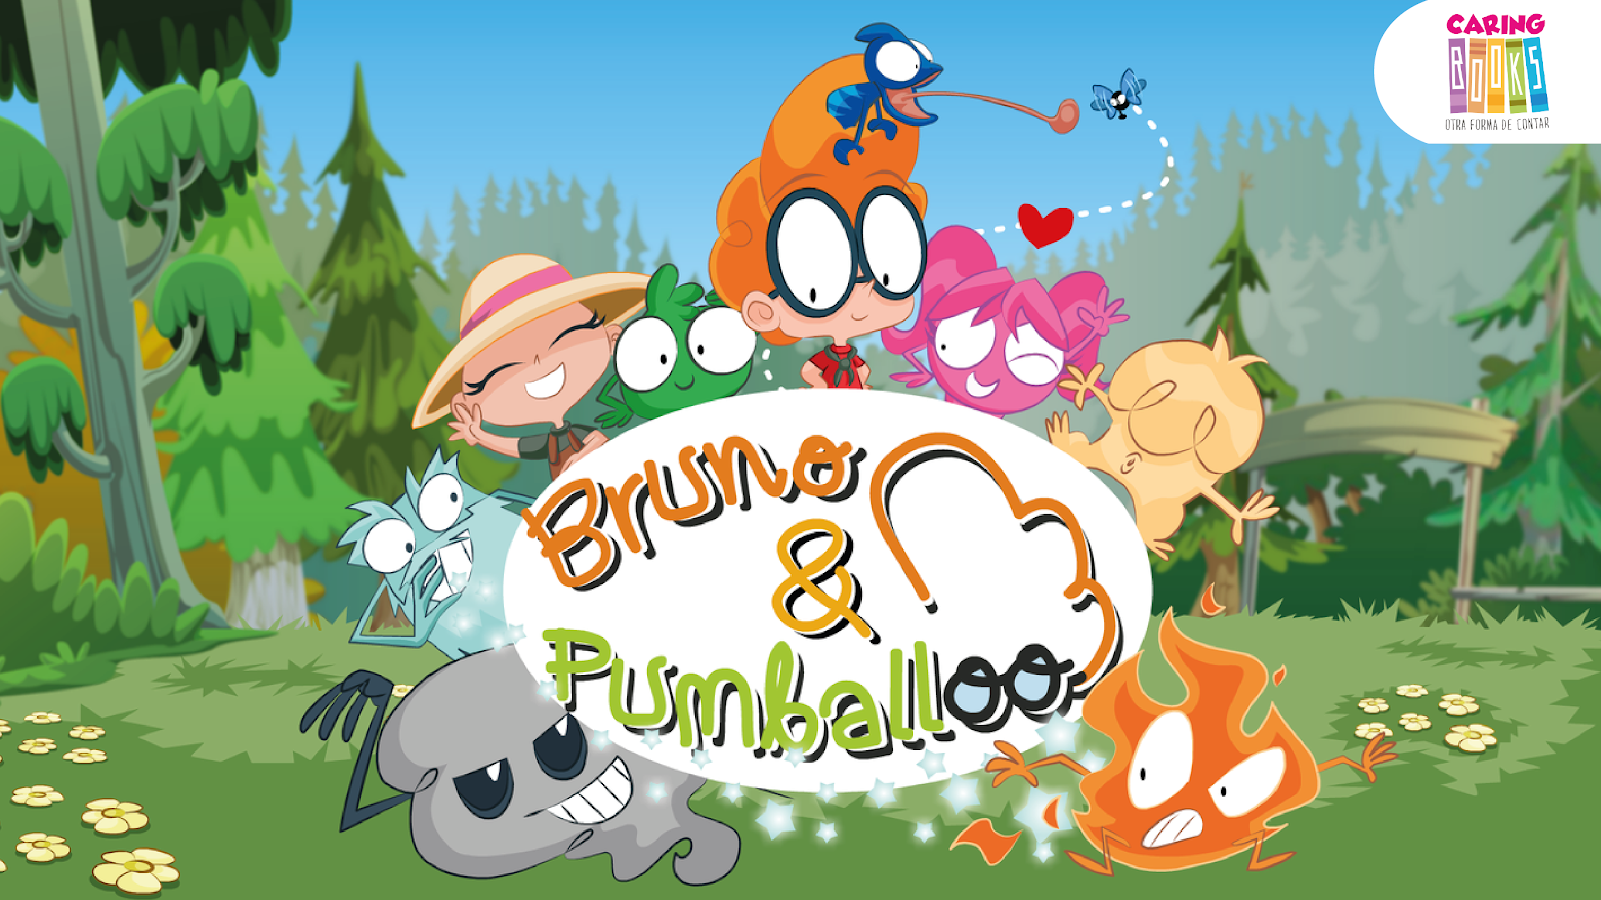 Bruno & Pumballoo- screenshot